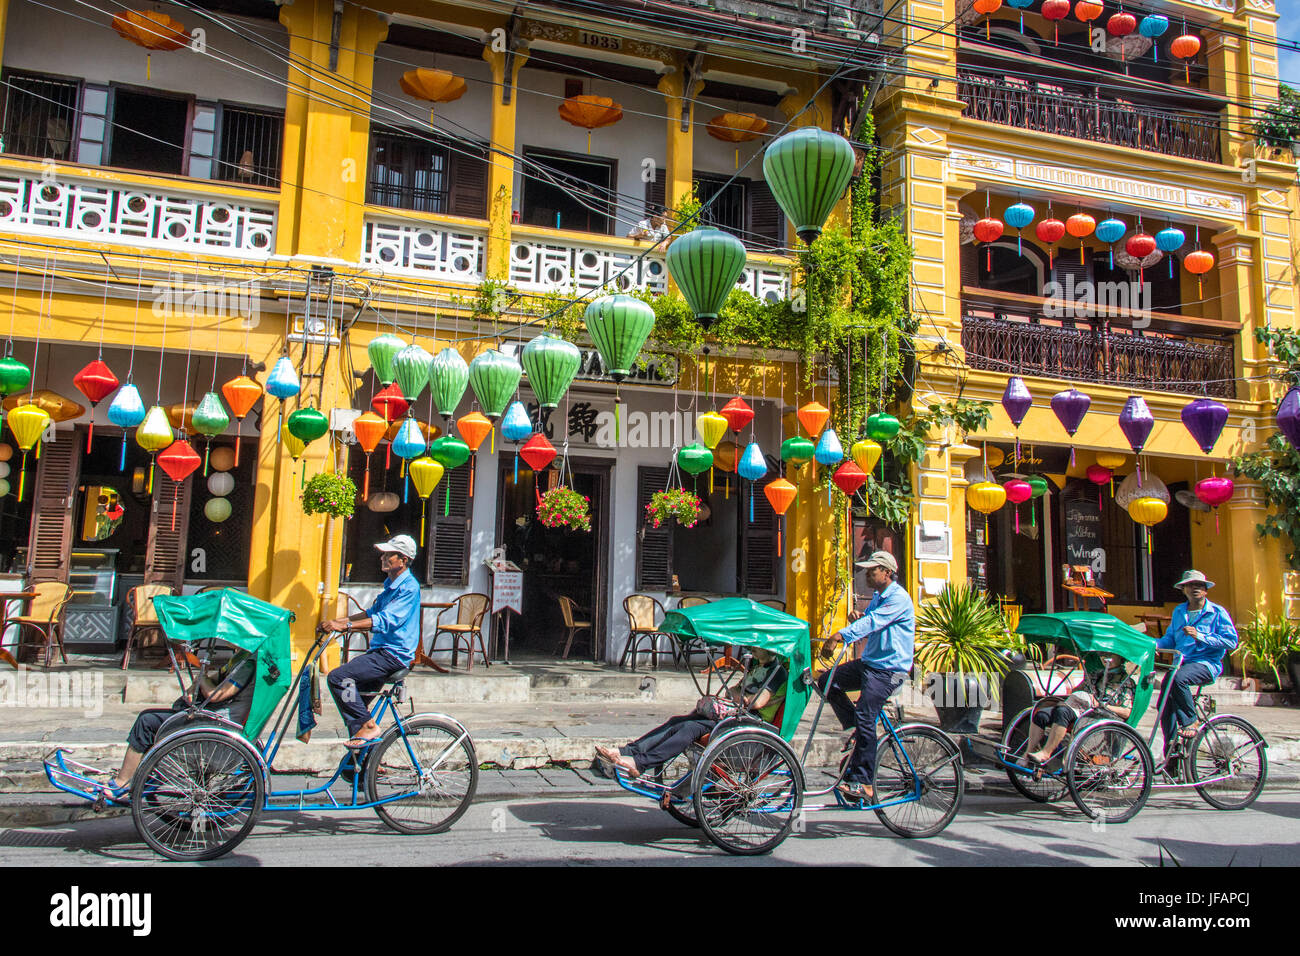 Tourists on a cyclo tour, colorful lanterns in Hoi An, Vietnam - Stock Image